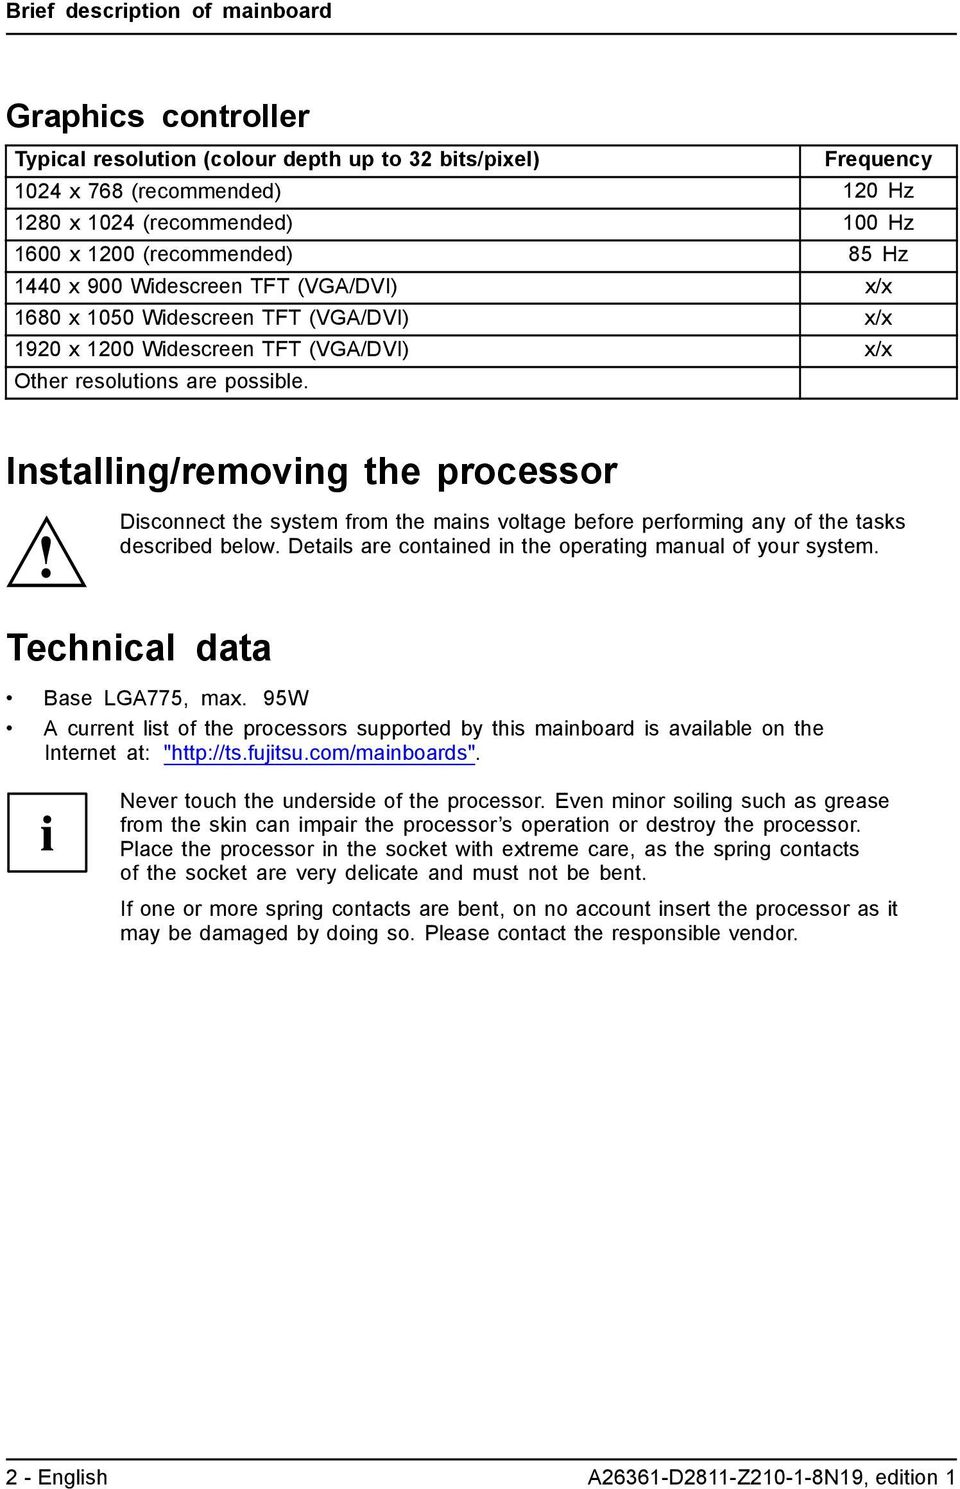 Installing/removing the processor Disconnect the system from the mains voltage before performing any of the tasks described below. Details are contained in the operating manual of your system.